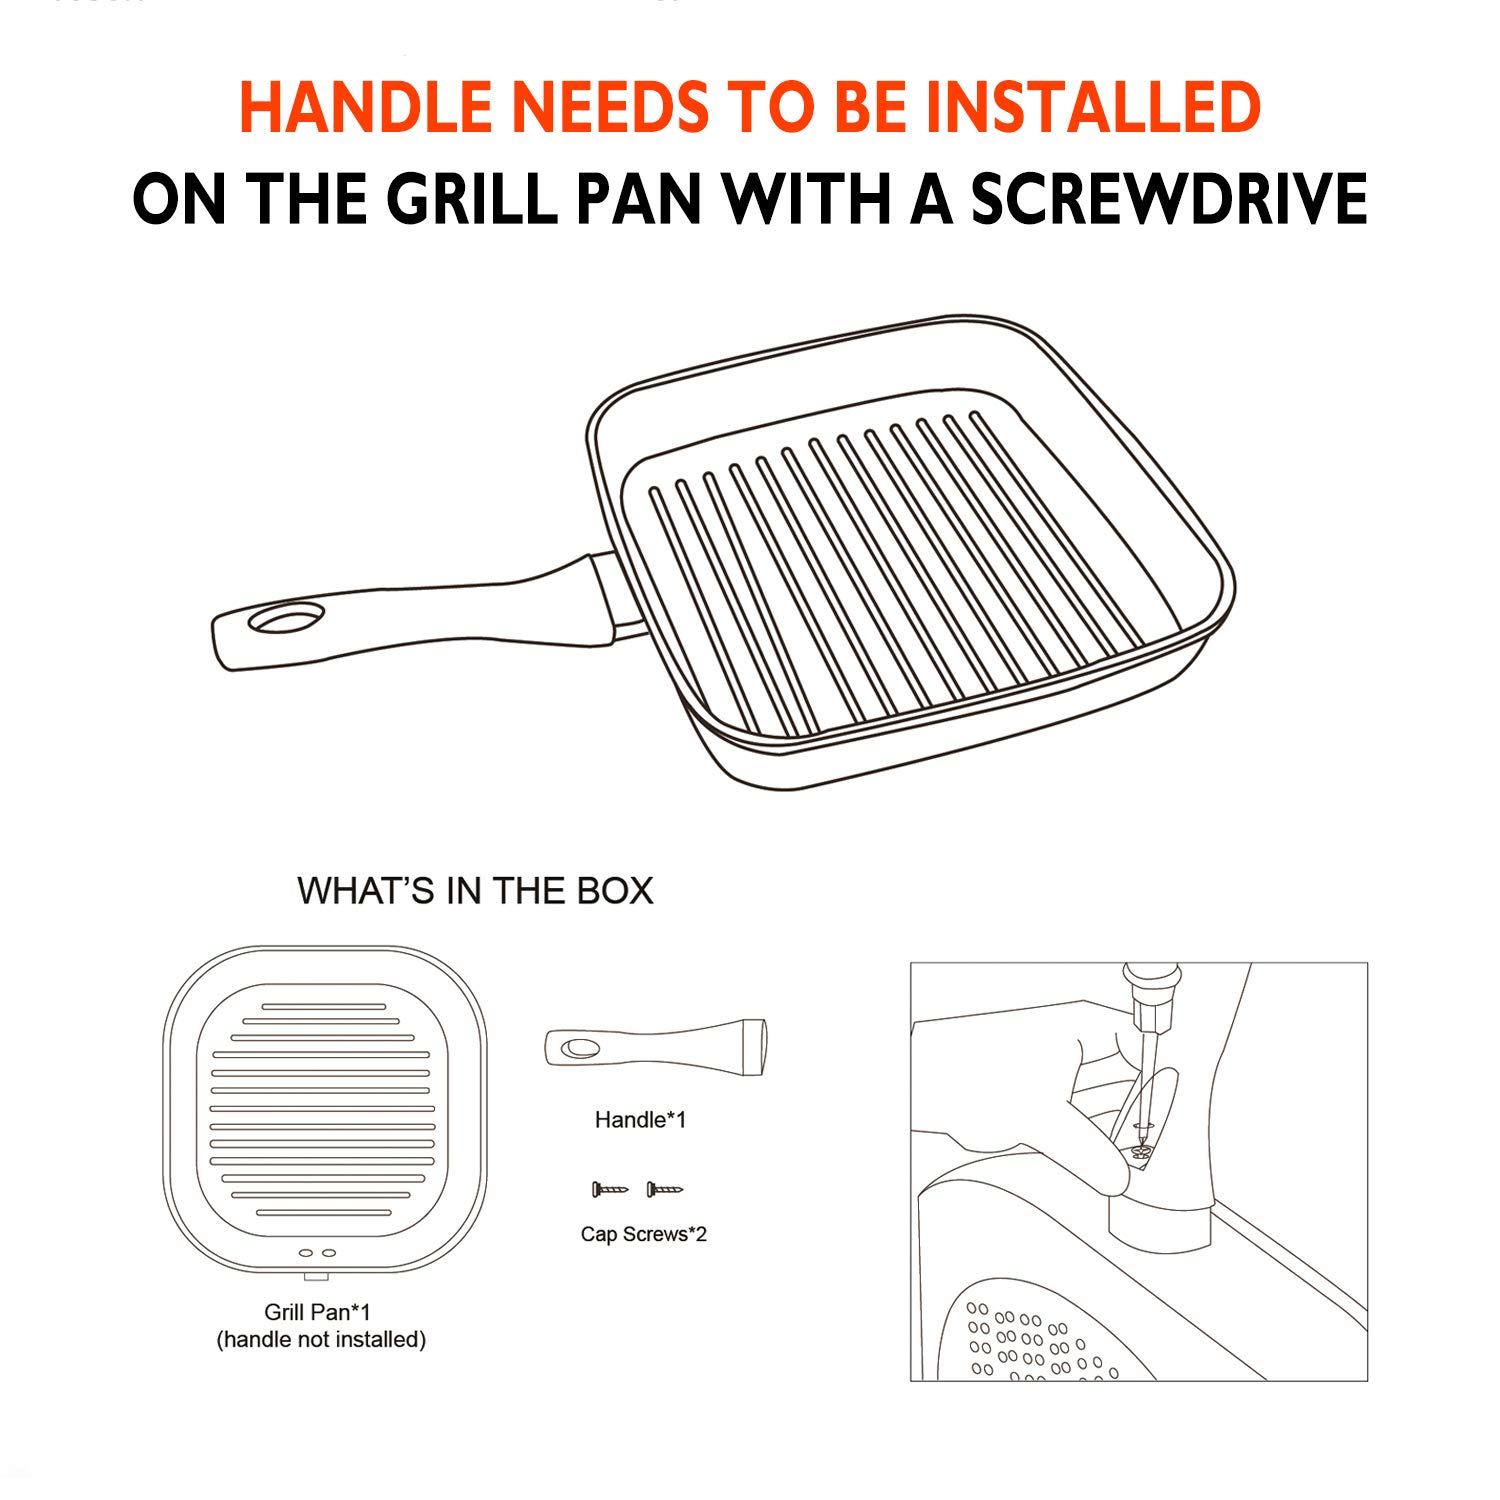 COOKER KING Square Grill Pan for Induction Cooktop, 10 Inches Ribben Pan for Stove Top, Nonstick Indoor Grill Pan with Deep Ridge for Grilling Marks on Steak, Meats and Bacon by COOKER KING (Image #5)